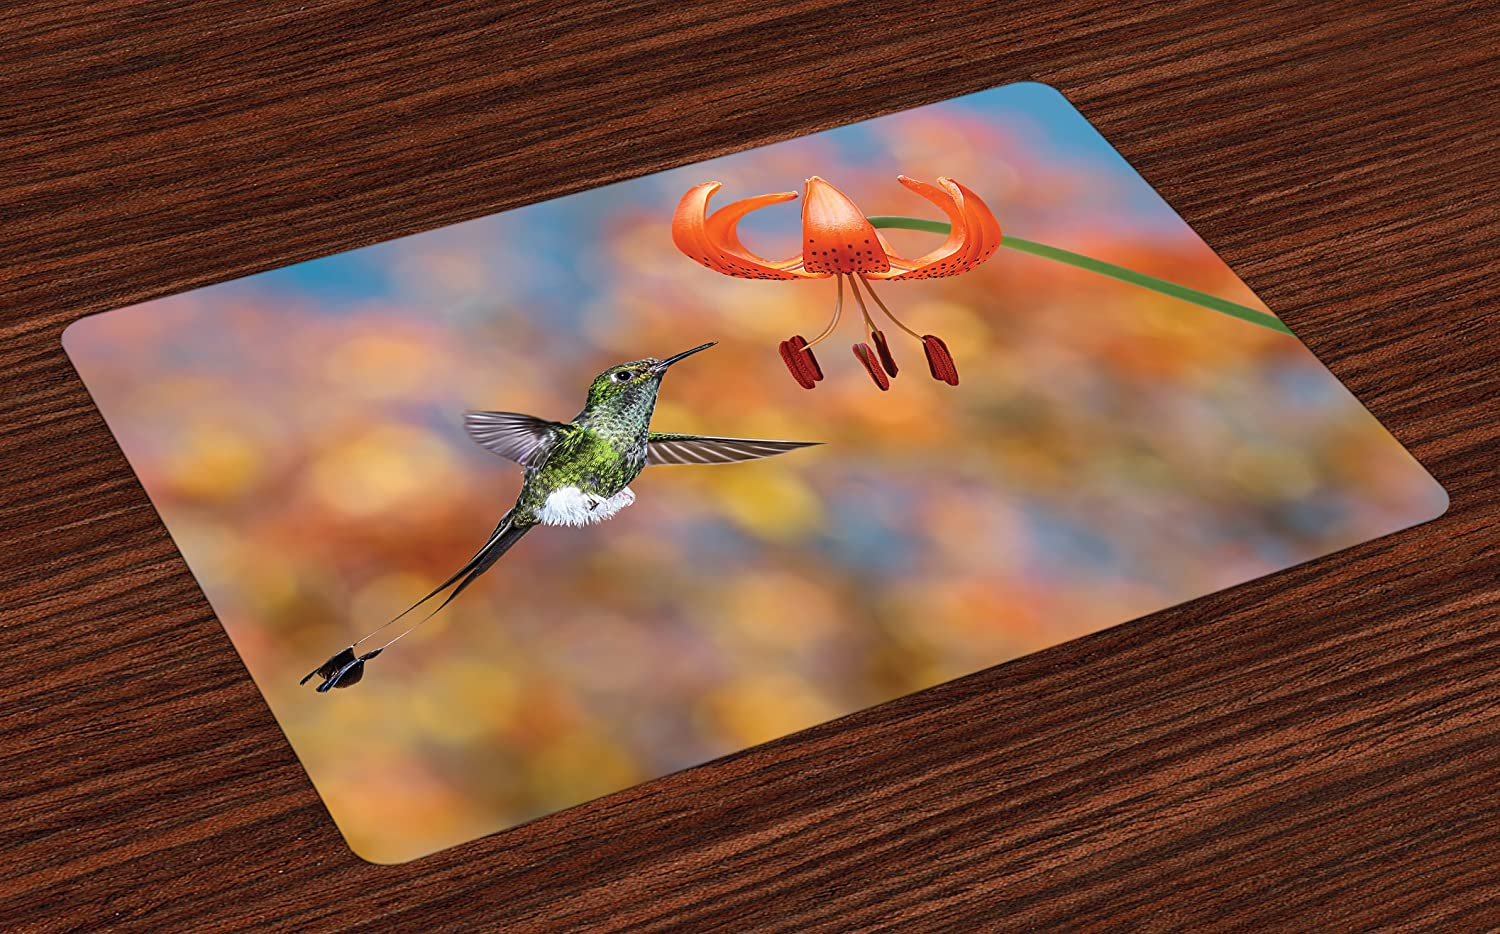 Ambesonne Hummingbird Place Mats Set of 4, Booted Racket Tail Feeding Nectar from Tiger Lily Blur Background Photo, Washable Fabric Placemats for Dining Room Kitchen Table Decor, Orange Green